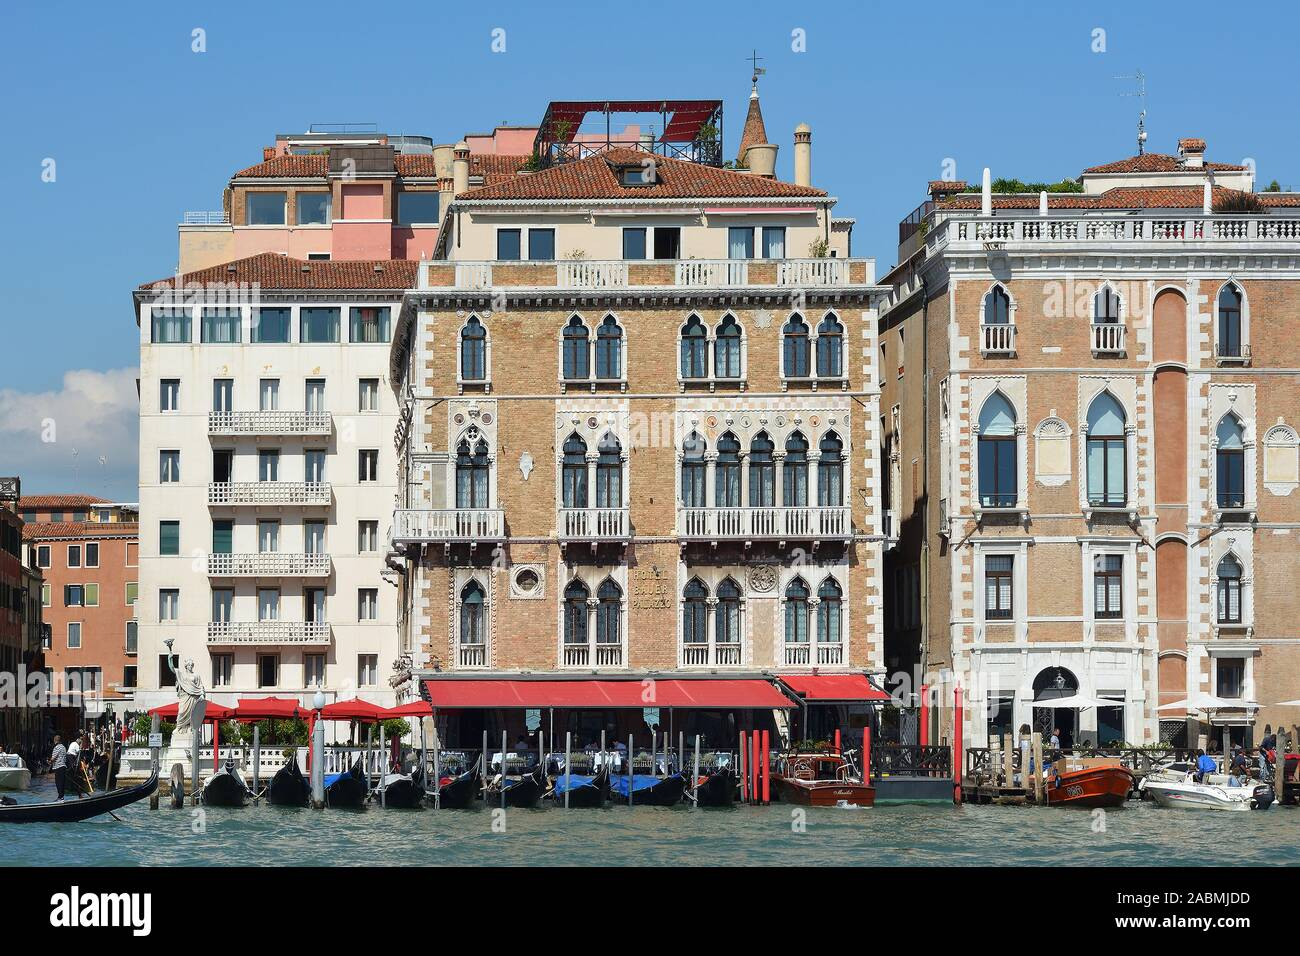 Venice Veneto Italy September 09 2019 Grand Hotel Bauer Palazzo On The Grand Canal In San Marco Of Venice Italy Stock Photo Alamy